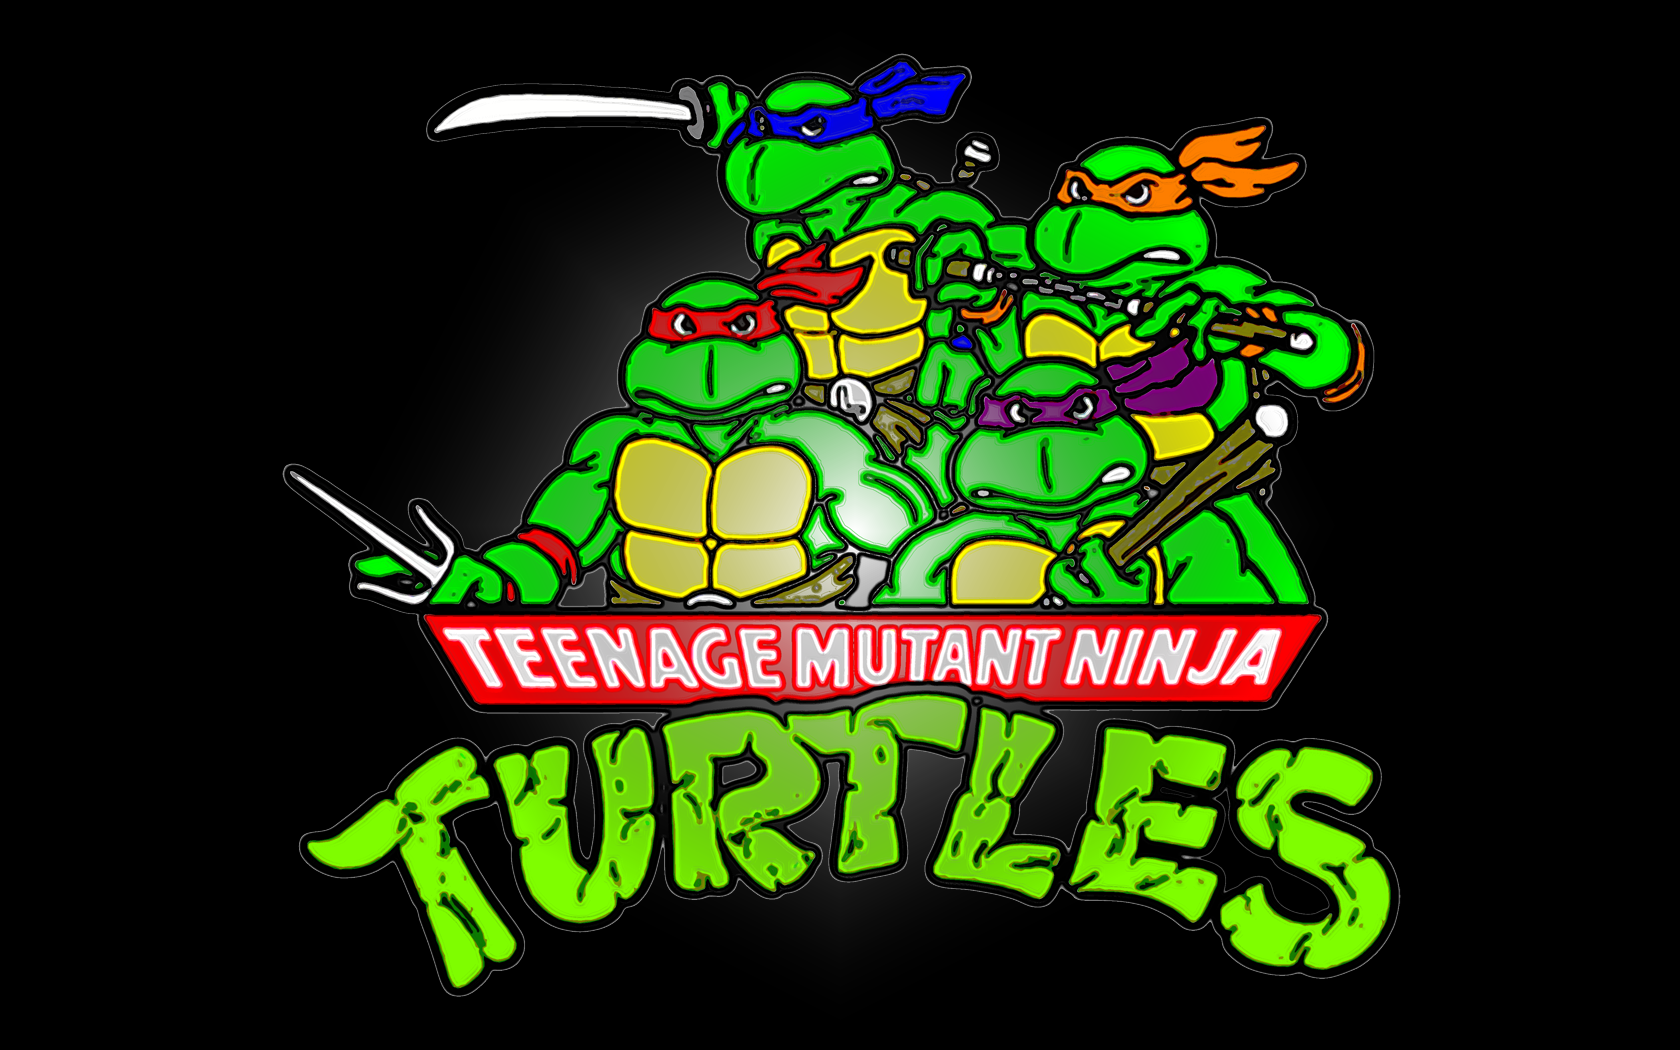 142 Teenage Mutant Ninja Turtles HD Wallpapers